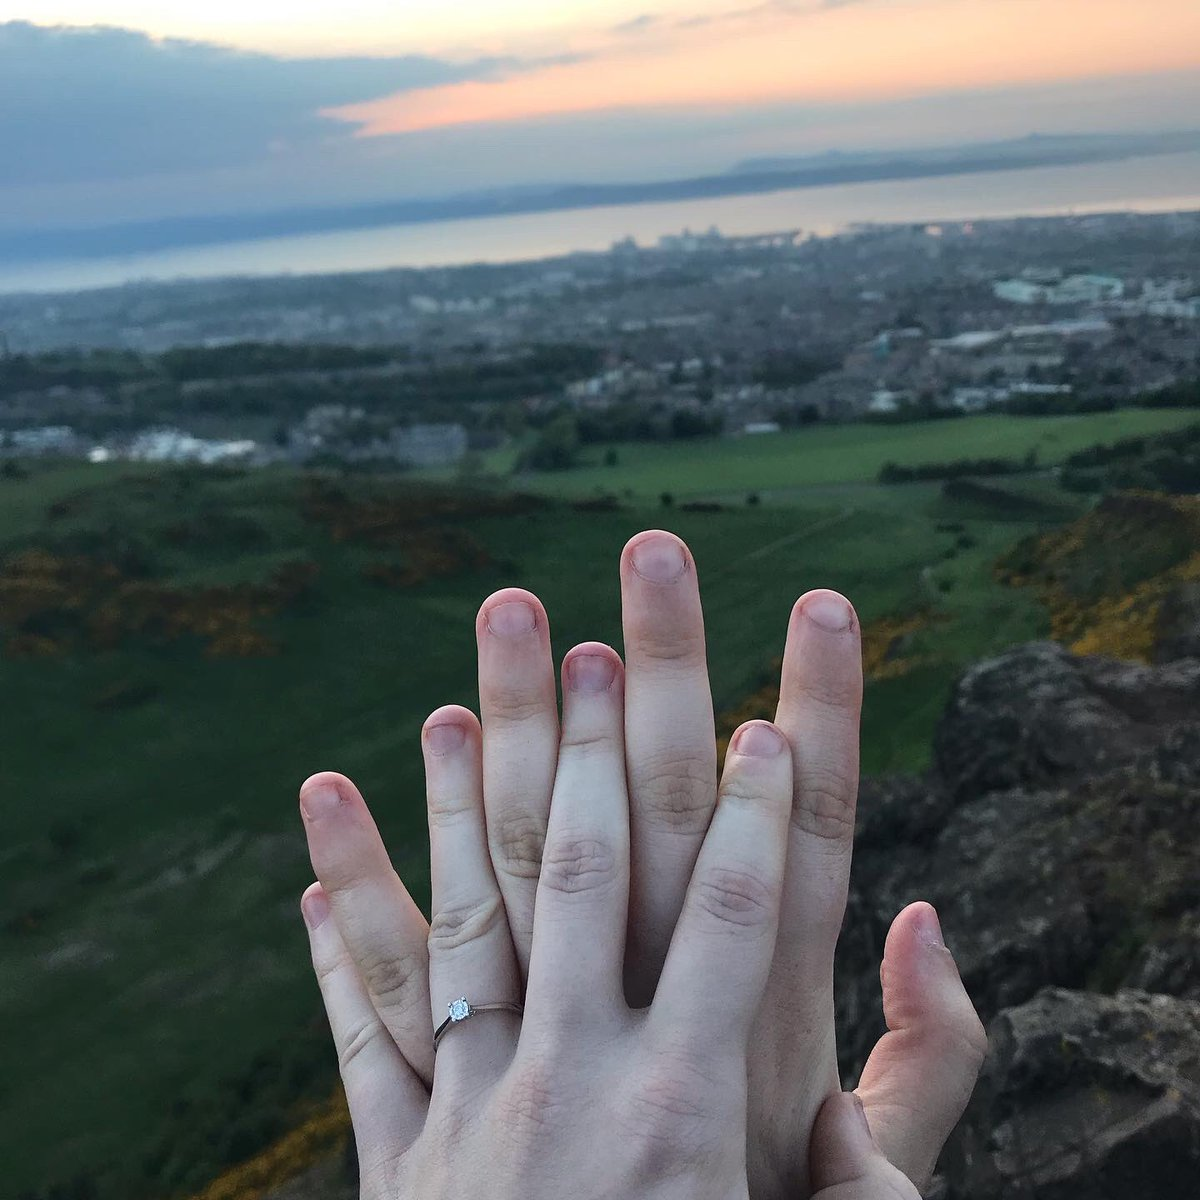 As the sun went down over Edinburgh she got down on one knee and asked me to marry her…   And I said the easiest YES I'll ever say! @Charlot52504401 https://t.co/Aj8tMuF75J